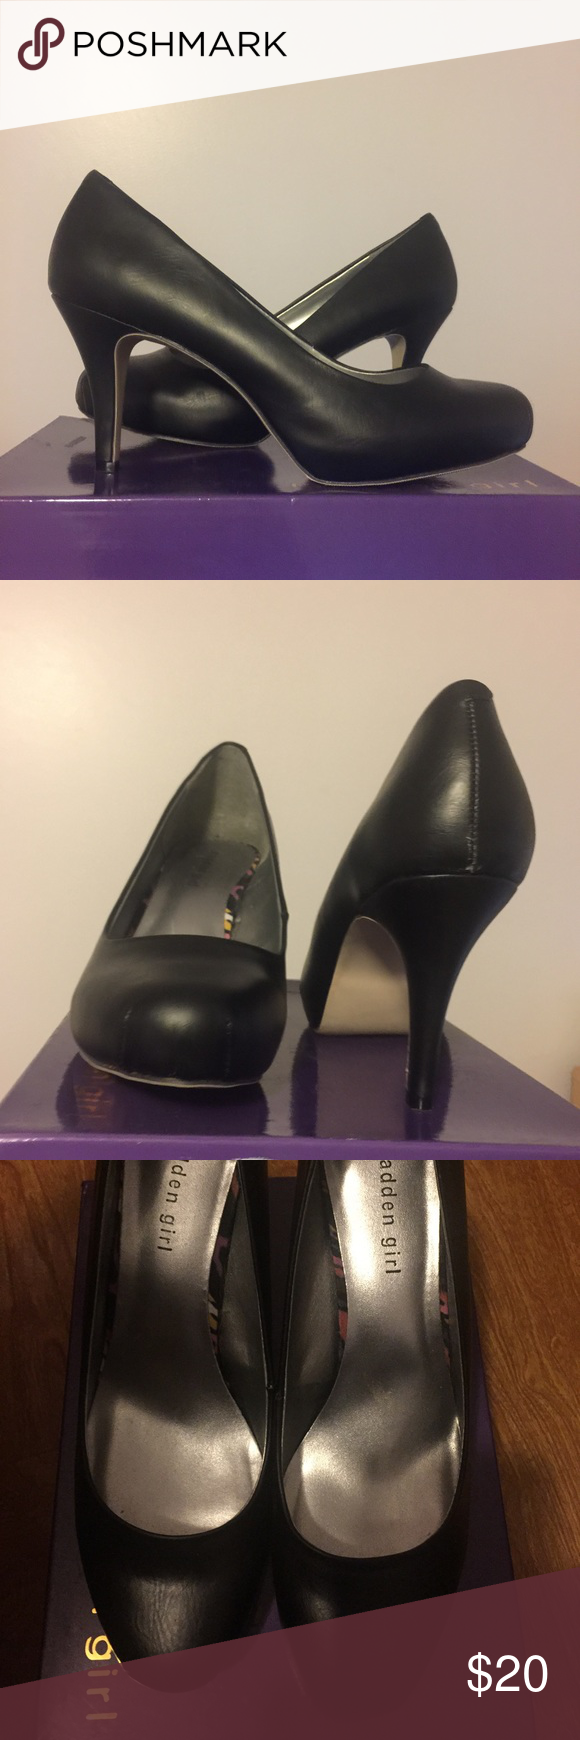 Madden Girl black Getta Pump size 11 Size 11. Black. New with box. Tried on never worn. Does have some wear from storage on backside of heels. See pics Madden Girl Shoes Heels